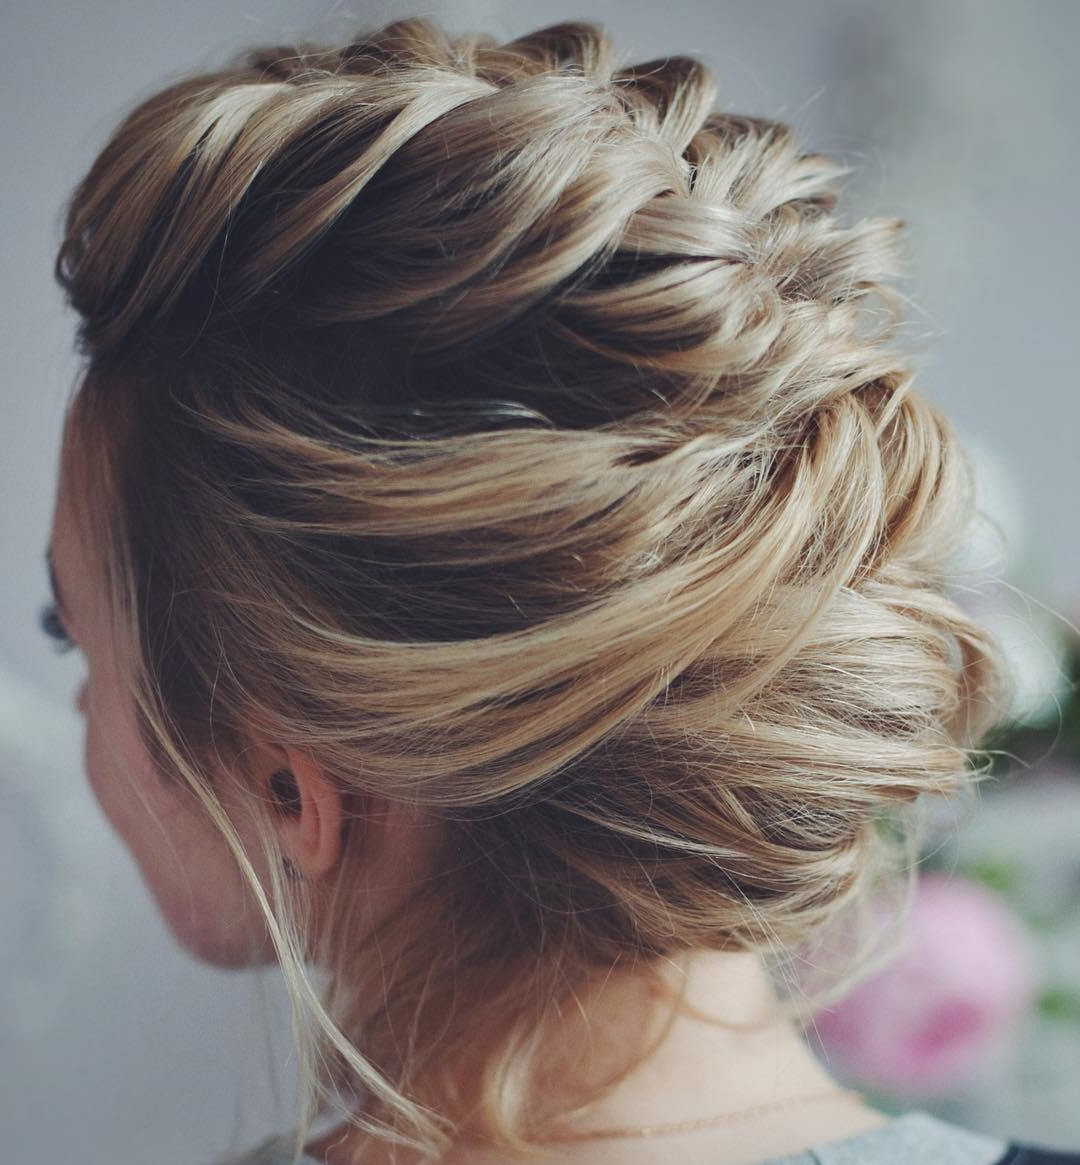 2017 Messy Bun Wedding Hairstyles For Shorter Hair With Regard To 50 Hottest Prom Hairstyles For Short Hair (View 12 of 20)